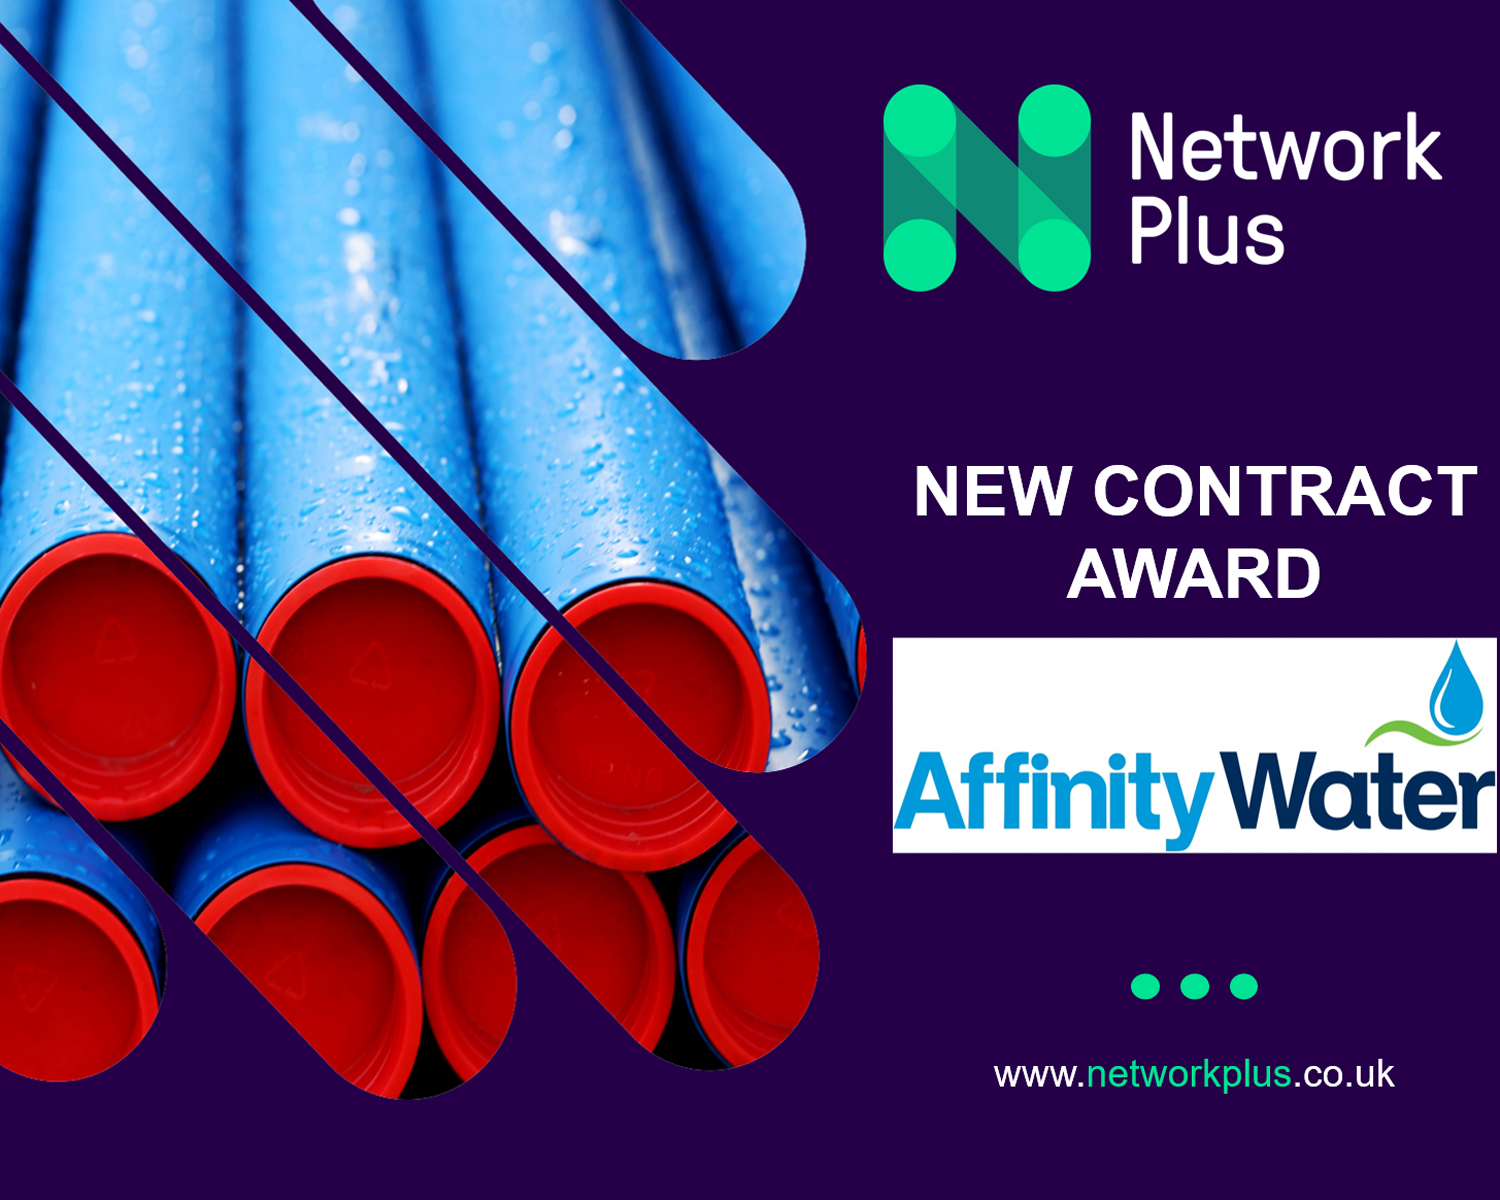 Affinity Water appoints Network Plus for Developer Services contract